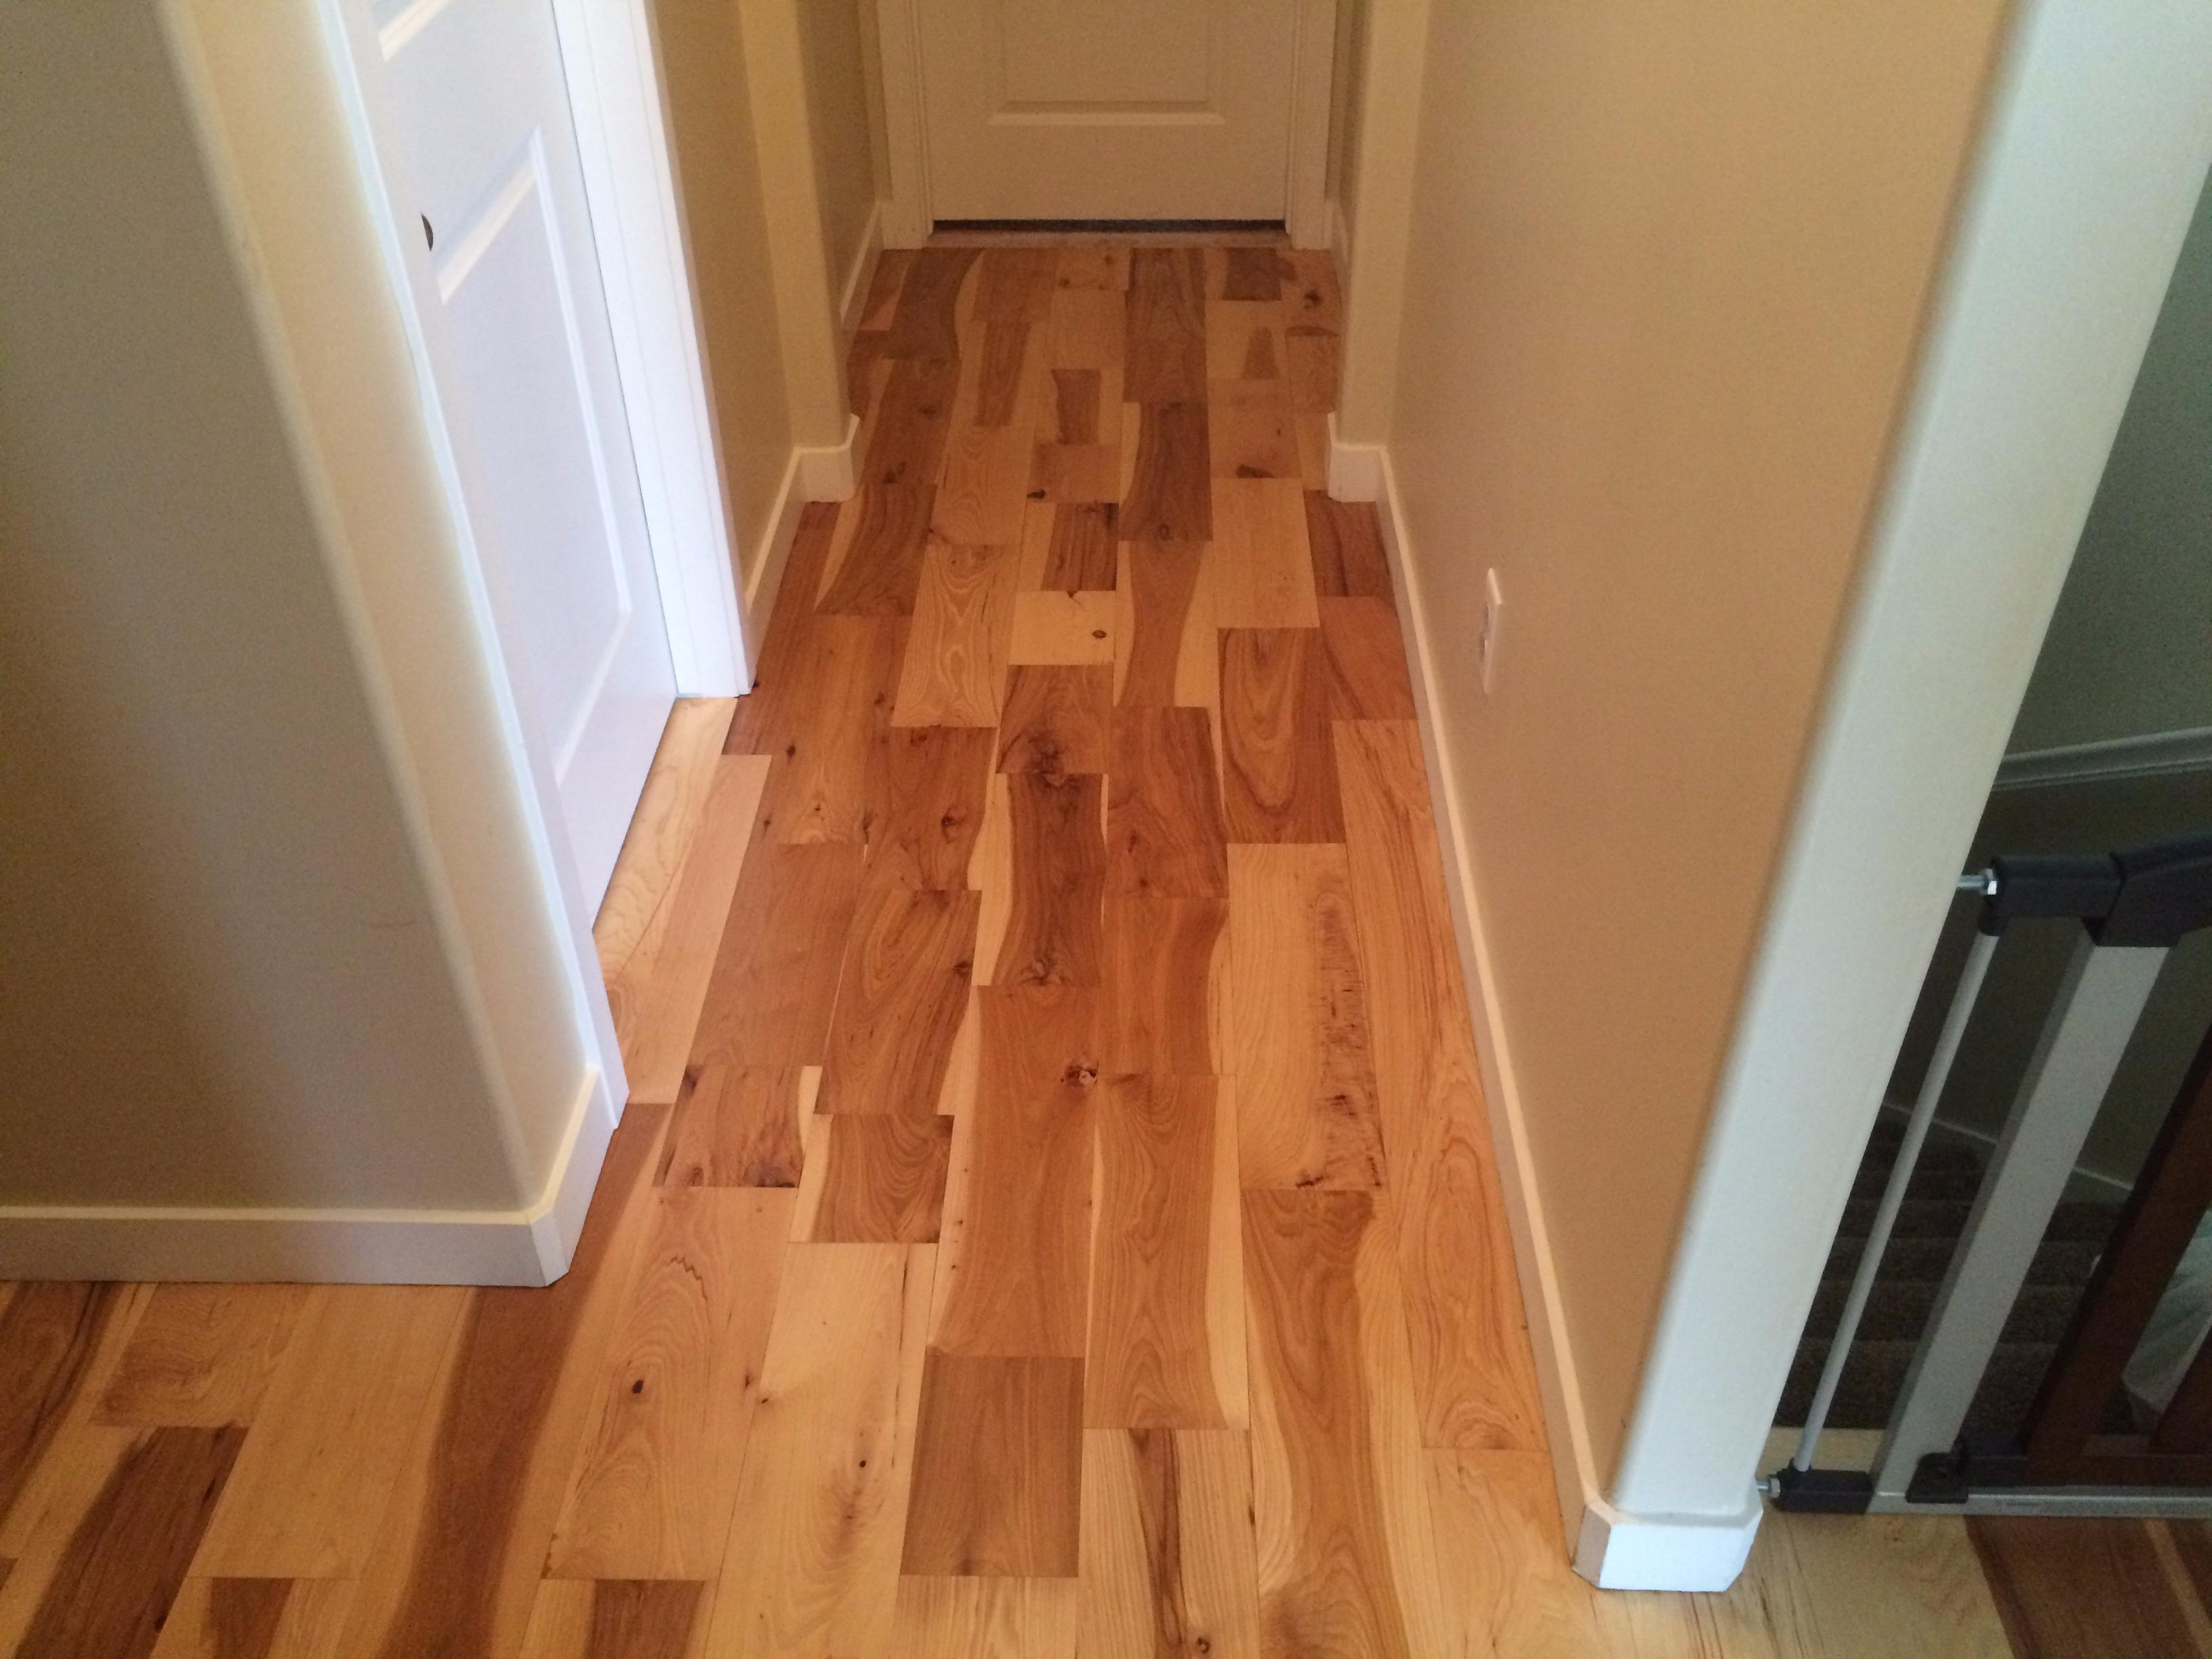 Lambert hardwood flooring coupons near me in ogden 8coupons for Hardwood floors near me